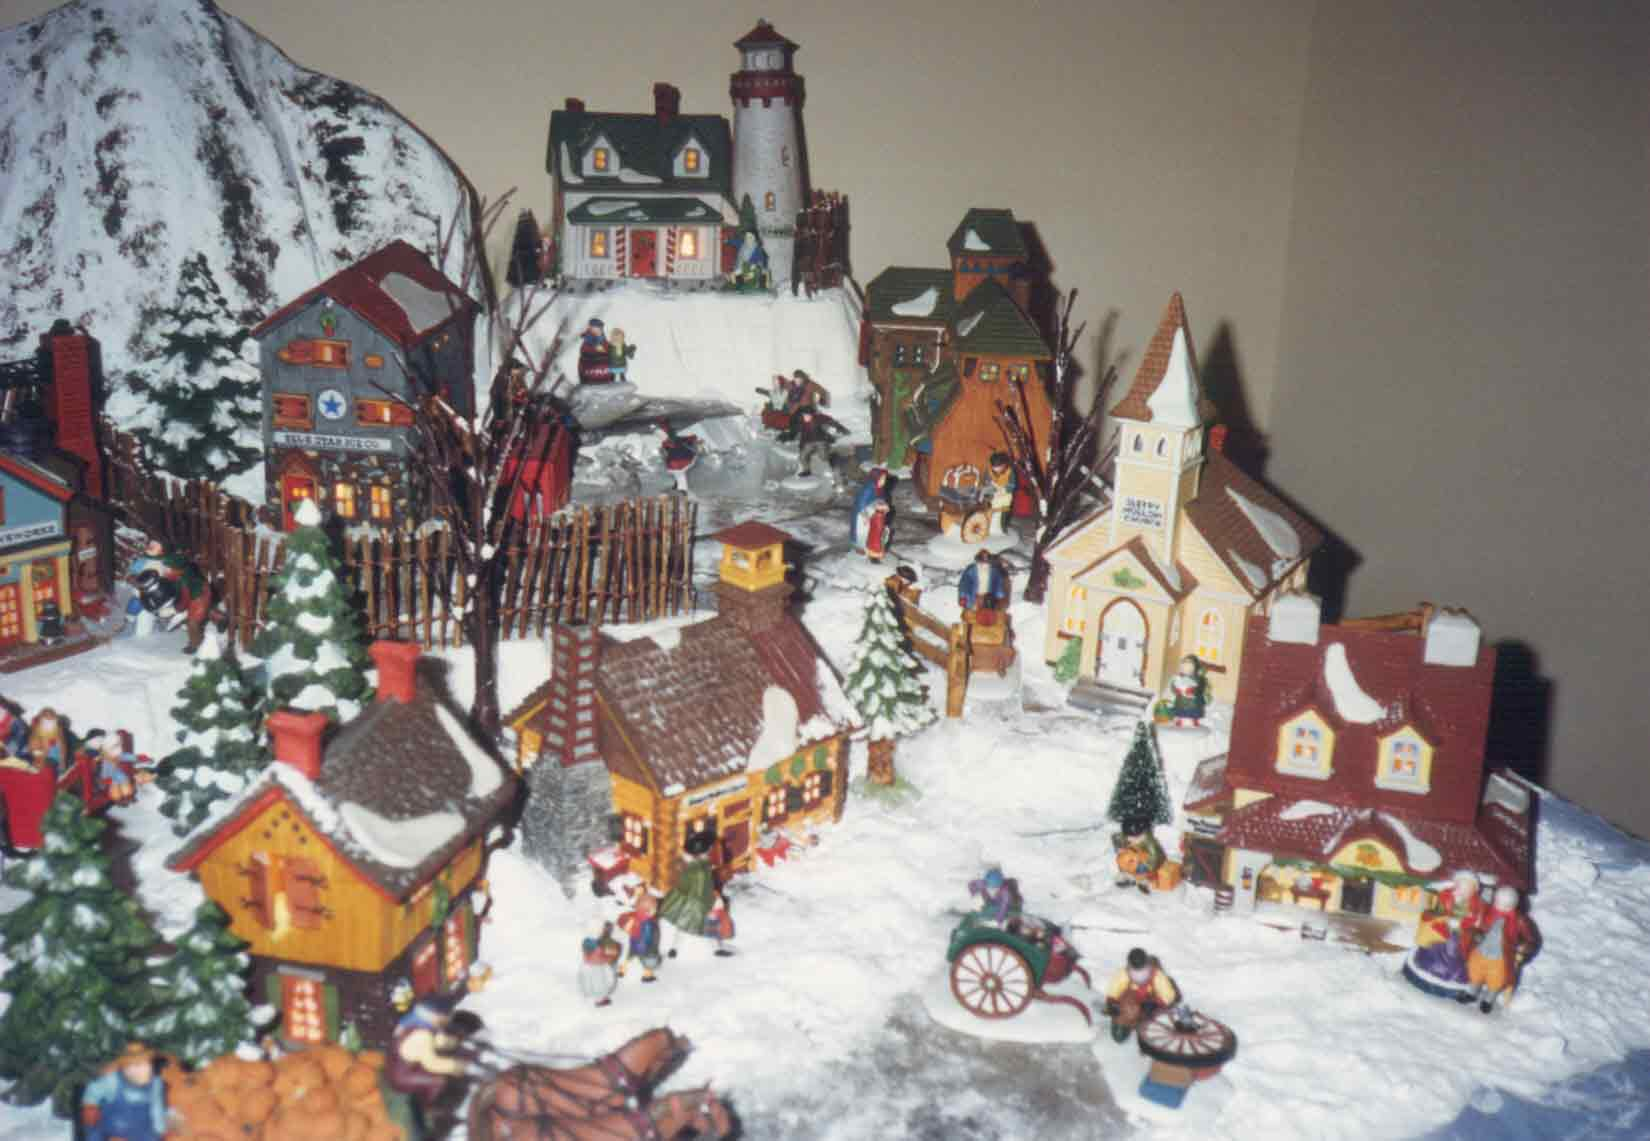 1000 images about department 56 on pinterest north pole christmas villages and building. Black Bedroom Furniture Sets. Home Design Ideas